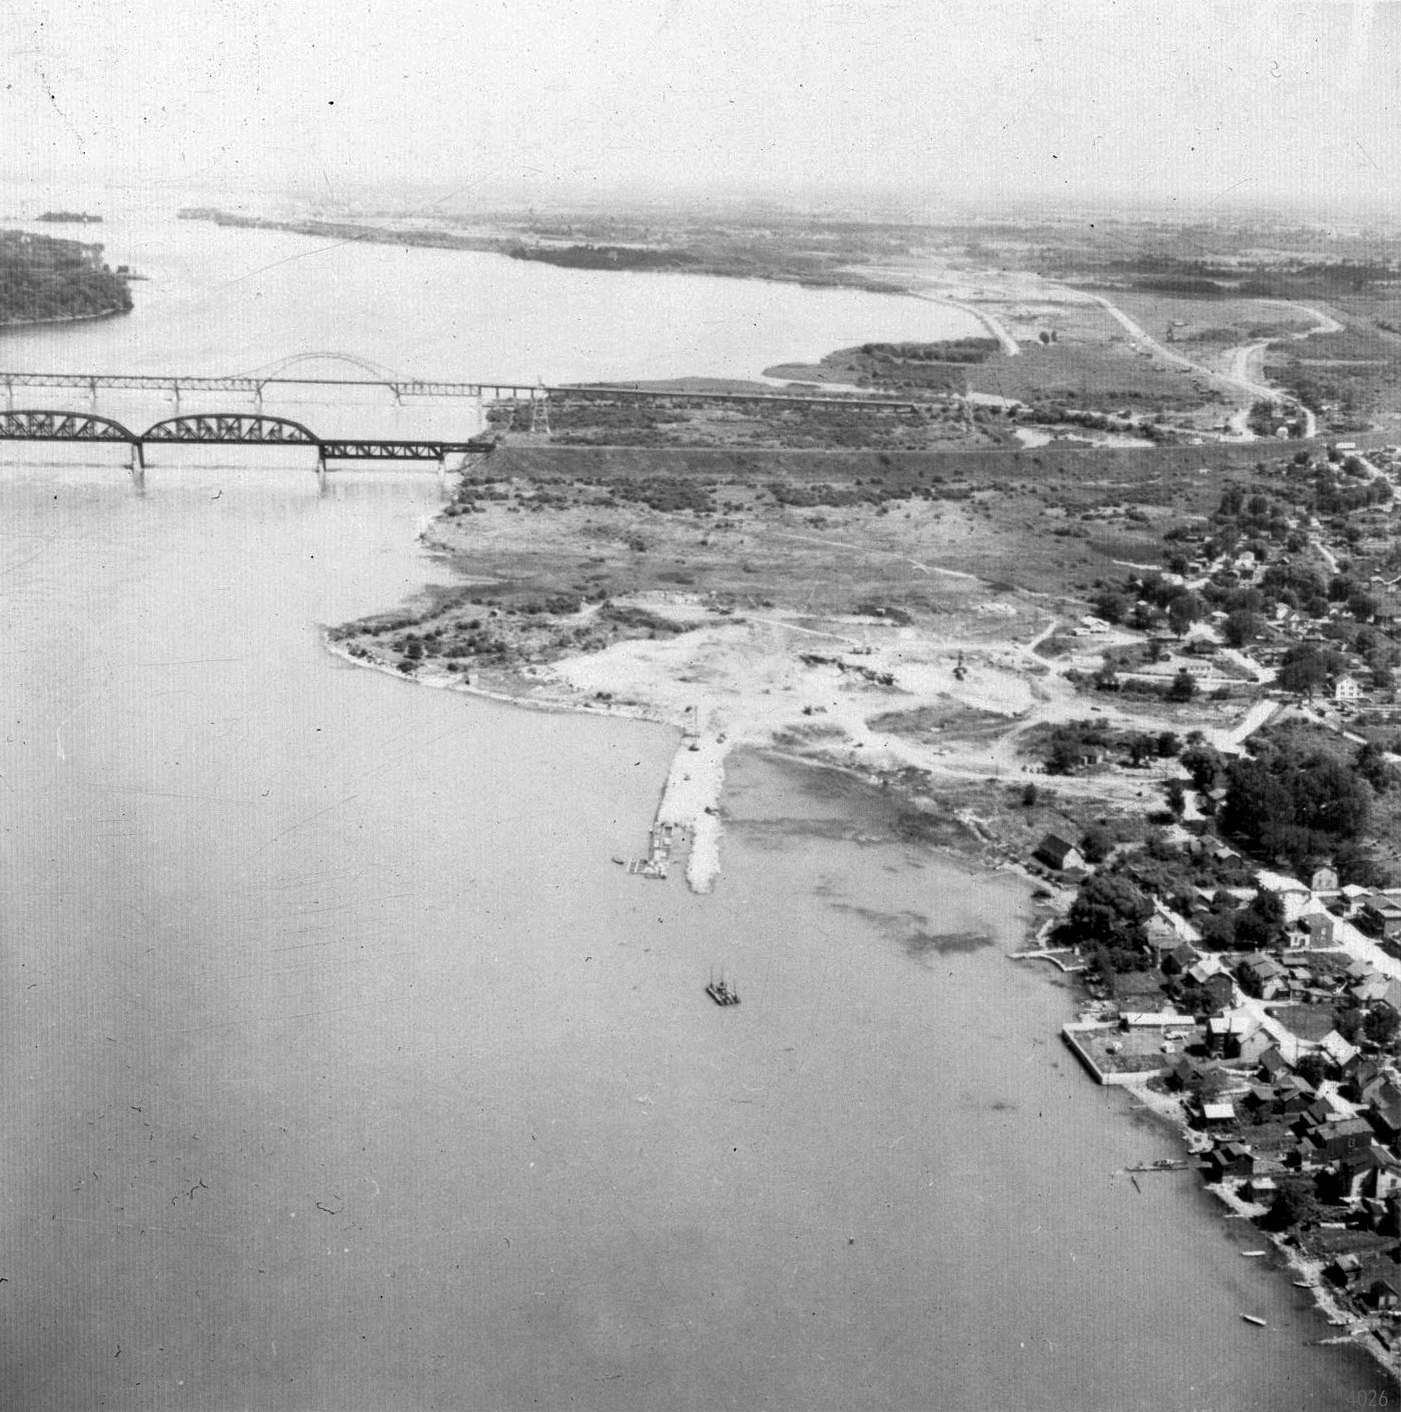 One of the few photos of Kahnawake's shoreline before the St. Lawrence Seaway. (The Kahnawake Photo Archive/ Kanien'keháka Onkwawén:na Raotitióhkwa Language and Cultural Center)